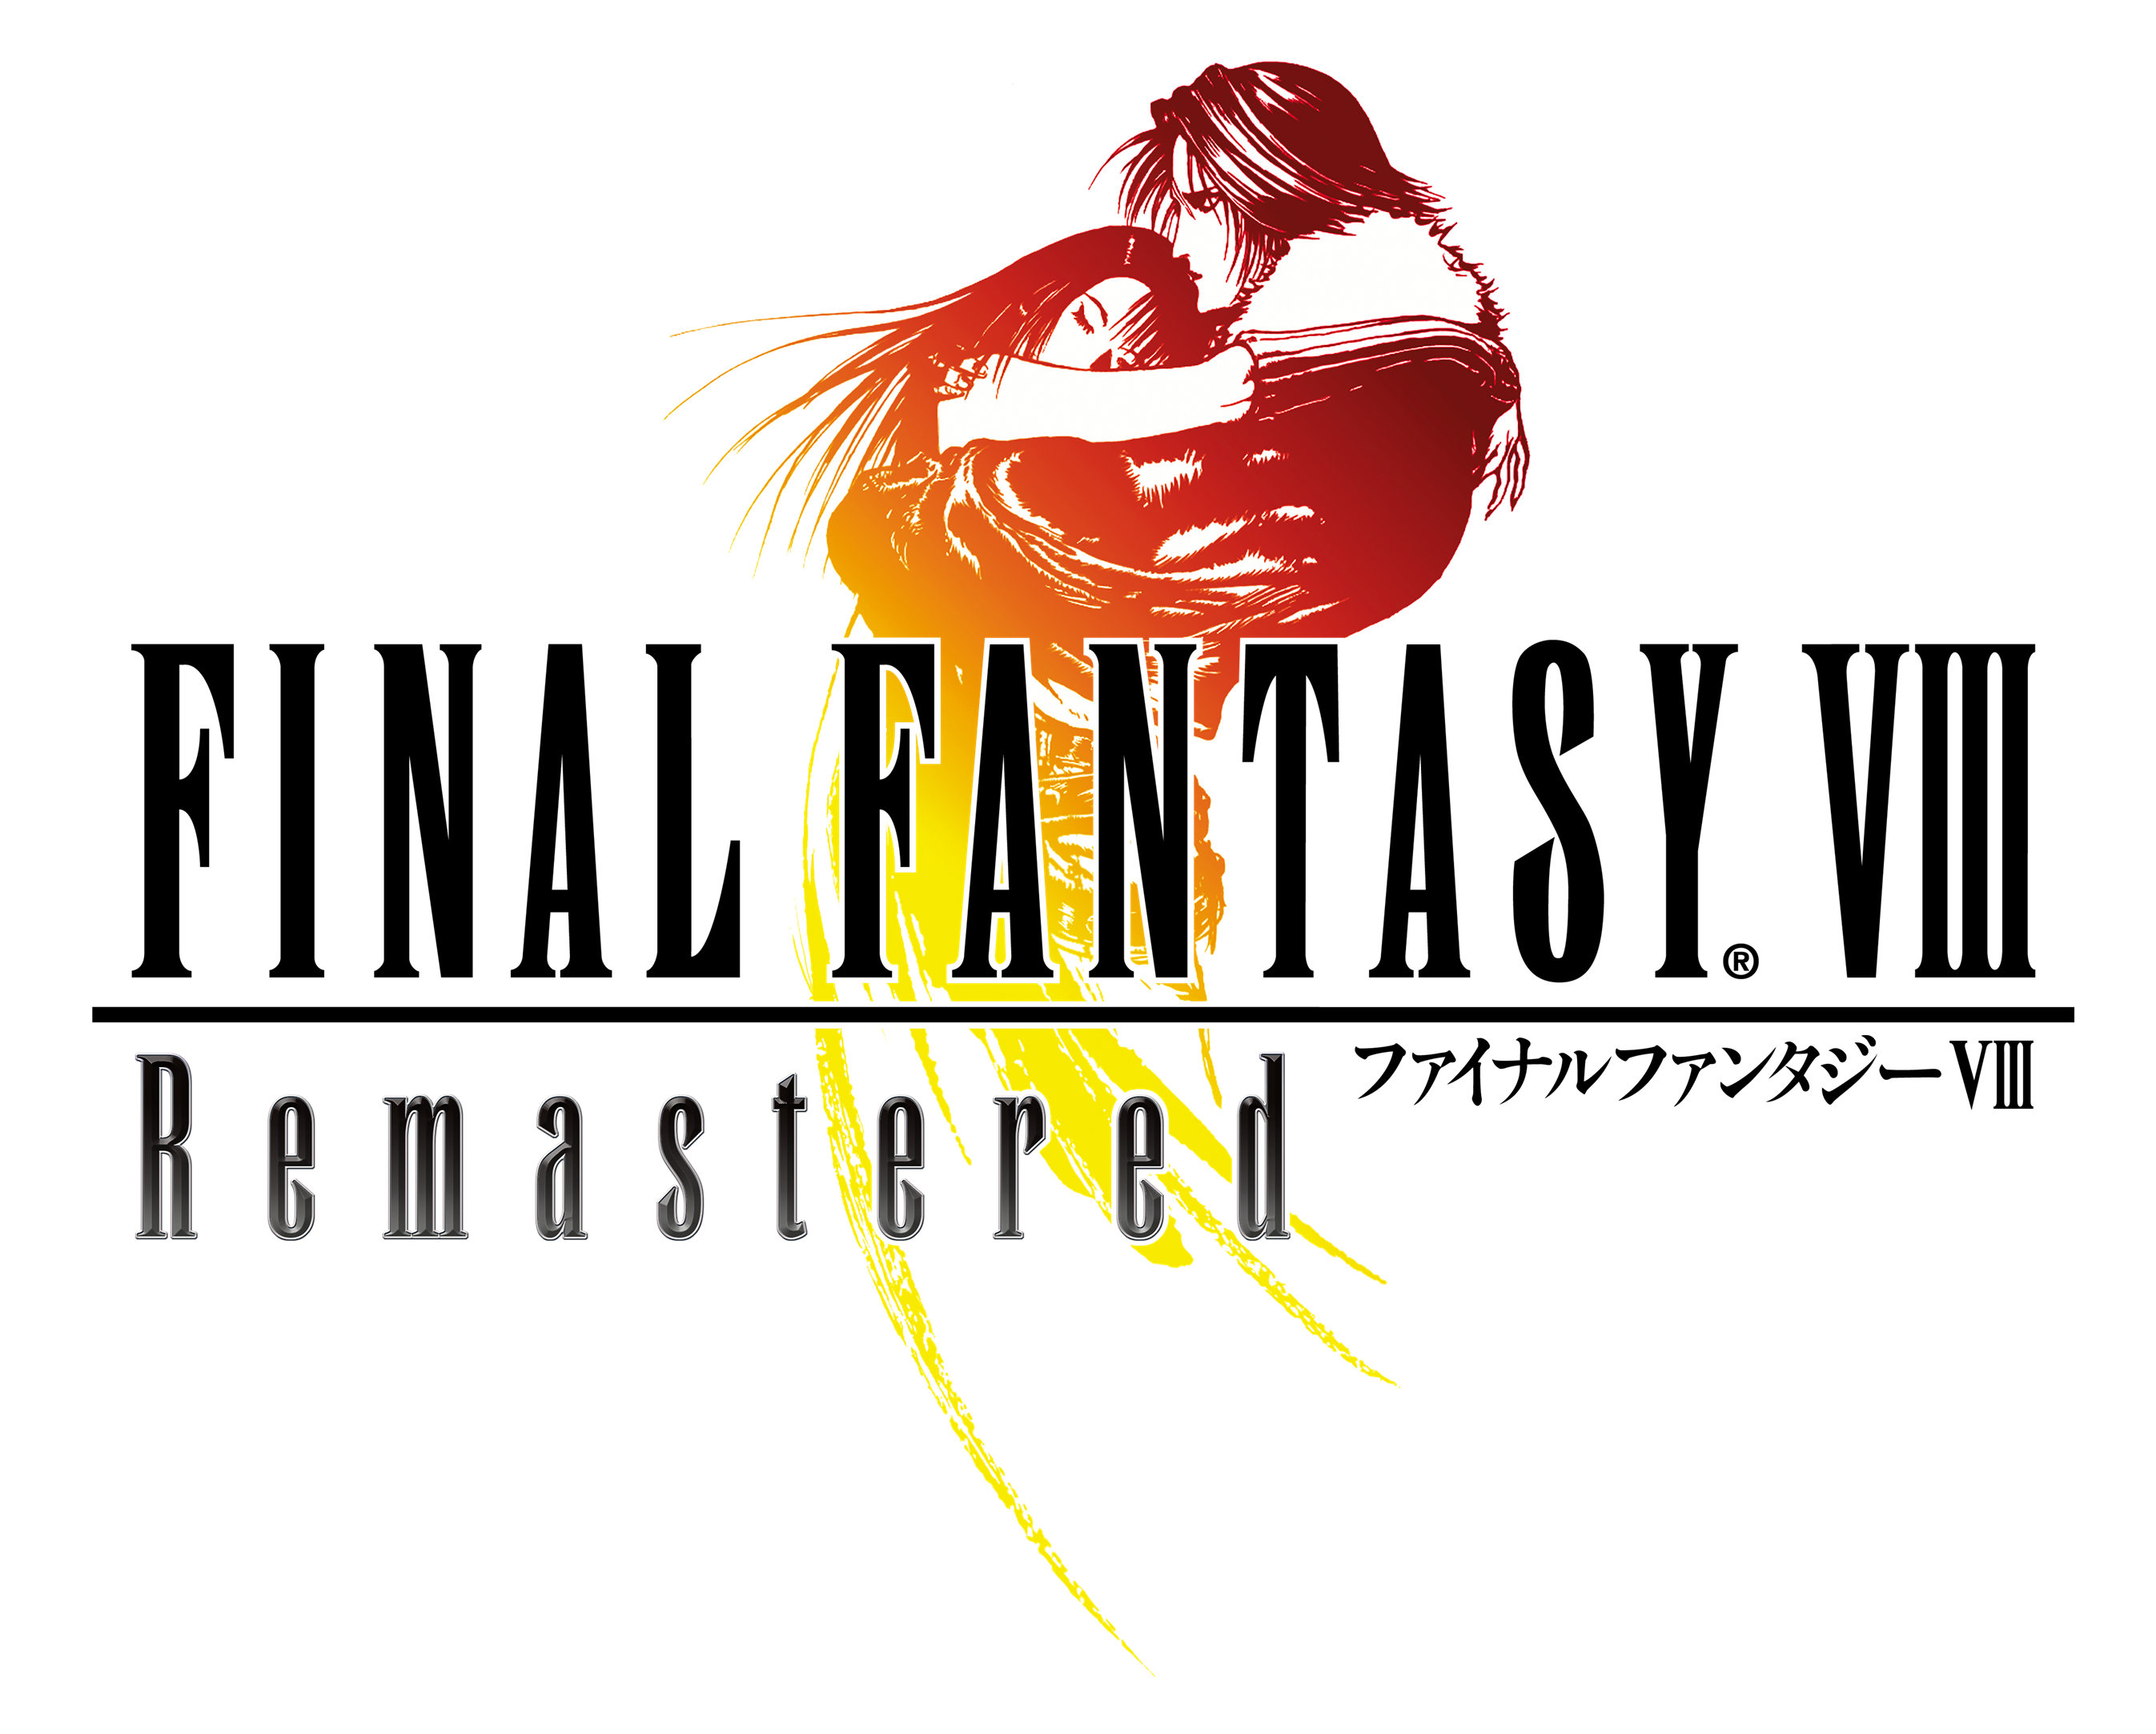 『FINAL FANTASY VIII Remastered』